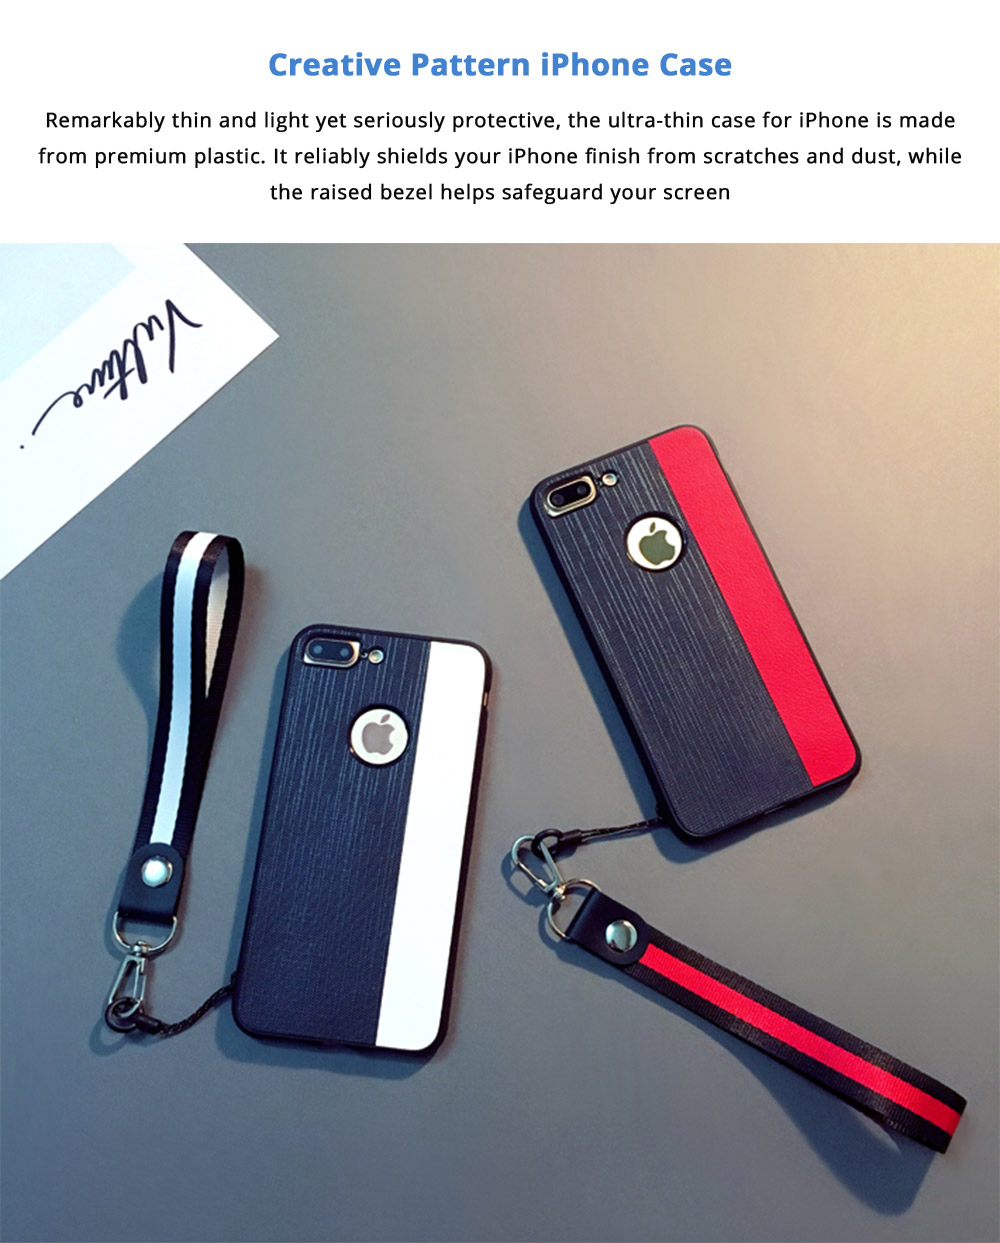 Stylish Ultra-thin Stripe Canvas Phone Case, Creative Durable Slim Phone Cover with Hand Strap Compatible for iPhone X, iPhone 8/Plus, iPhone 7/Plus, iPhone 6/6s/6 Plus/6S Plus 6